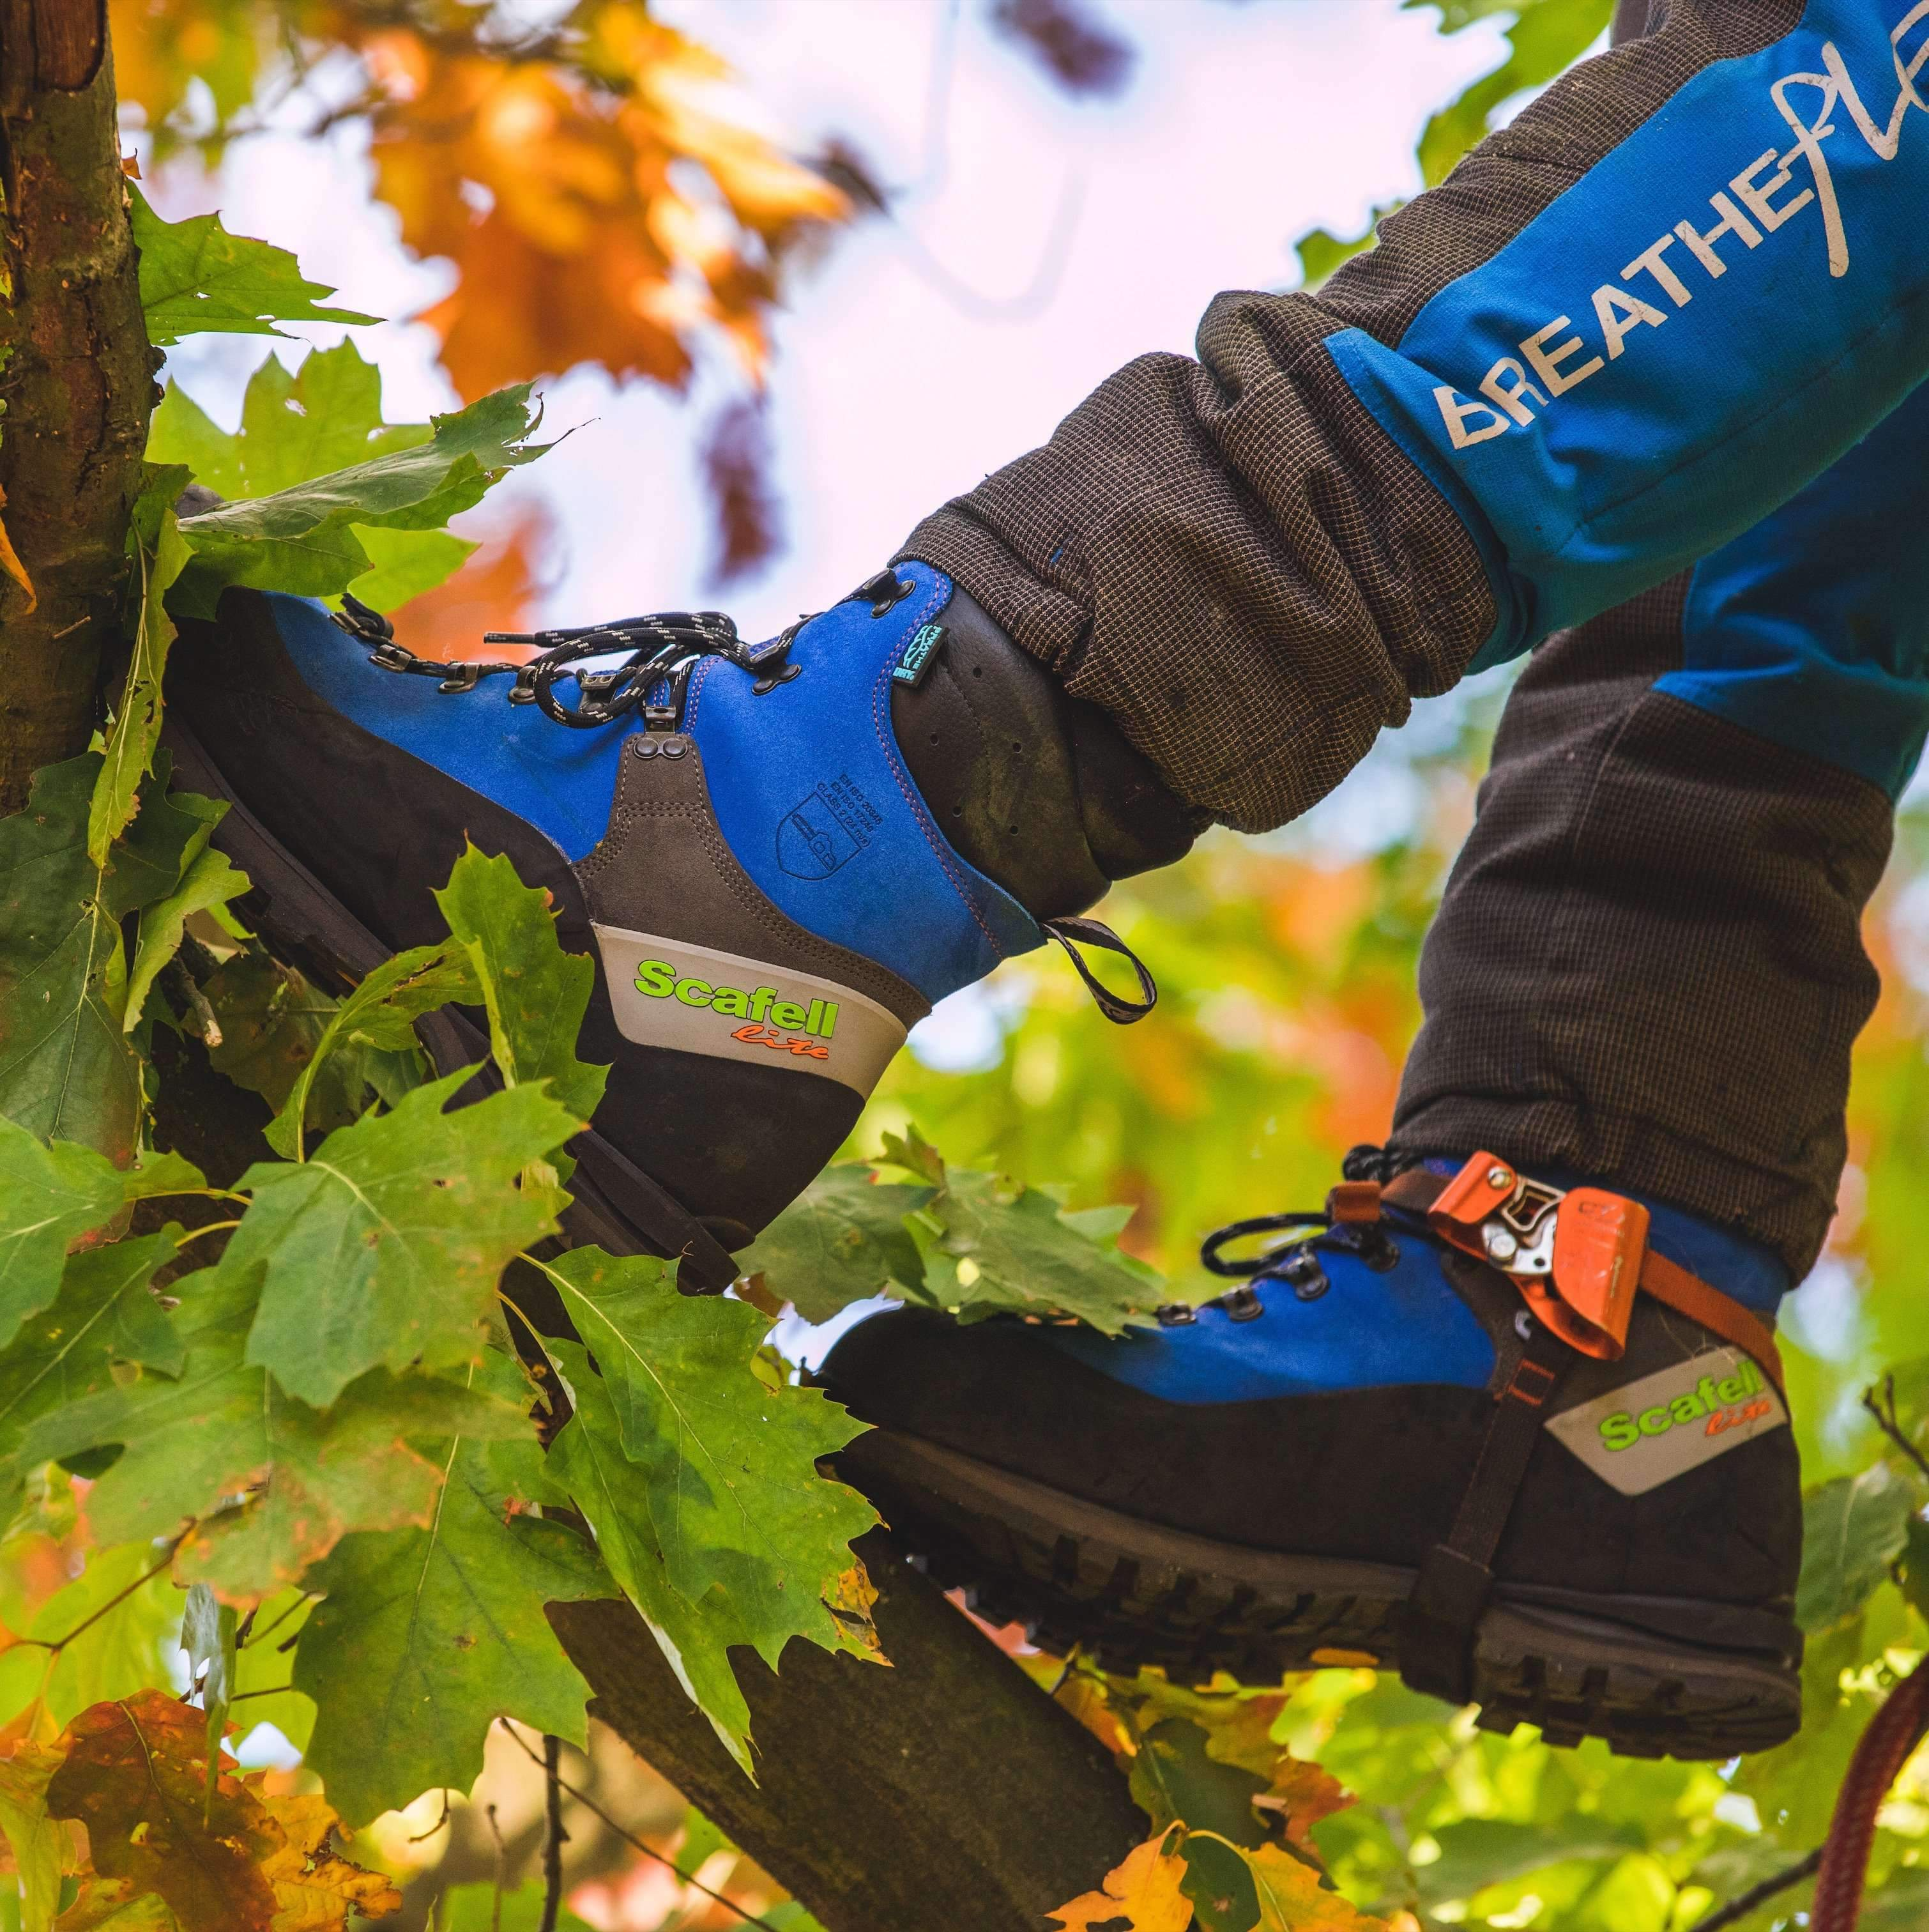 Arbortec Scafell Lite Chainsaw Boots in Action